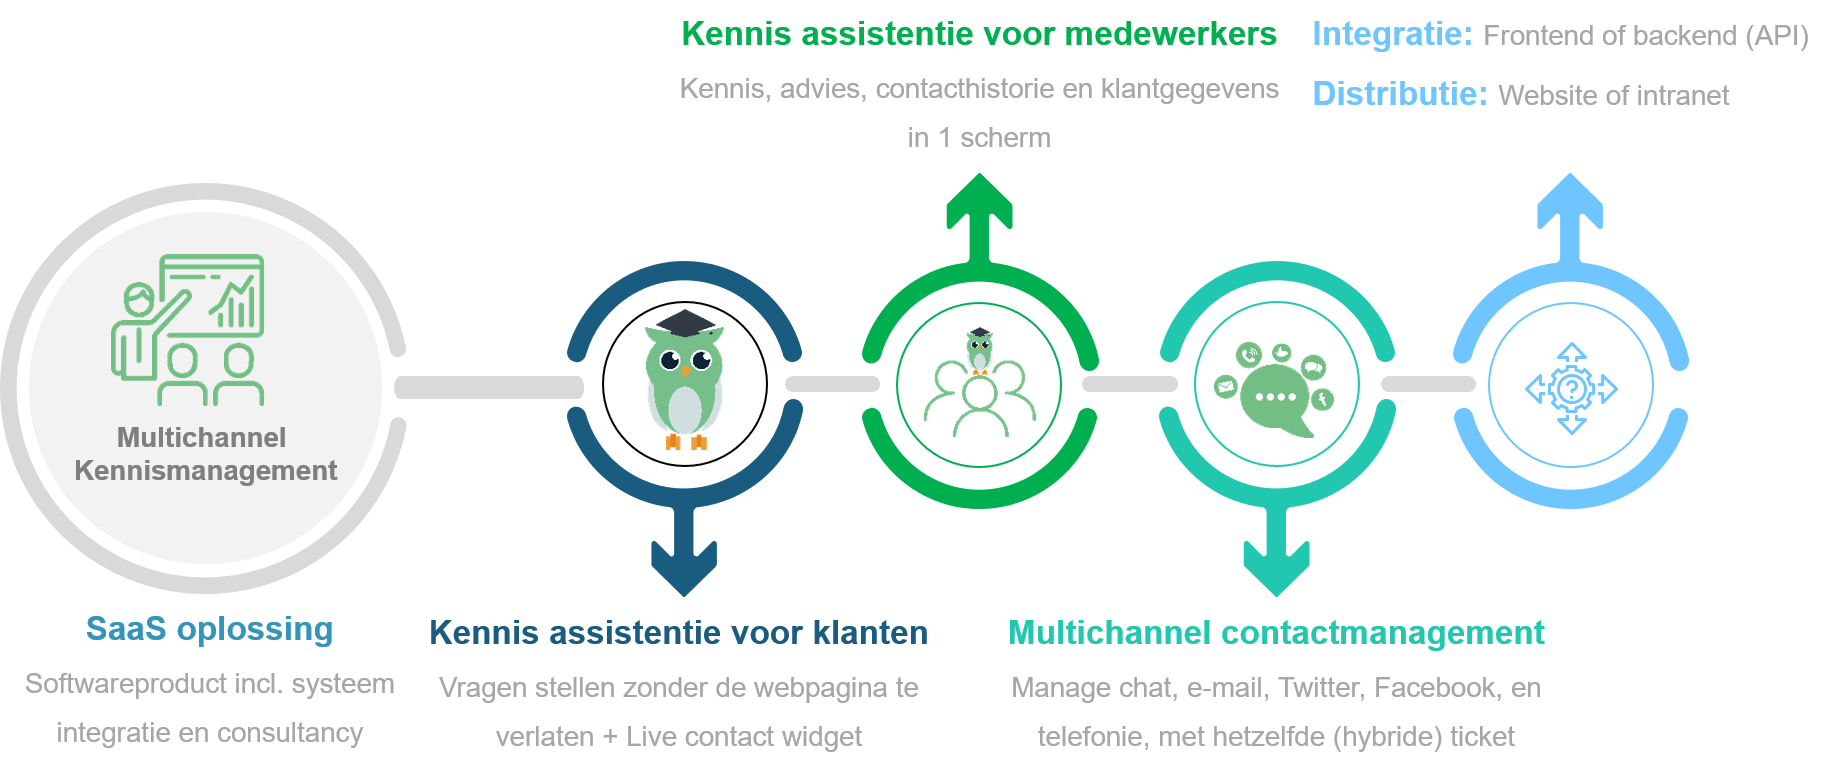 Multichannel kennismanagement